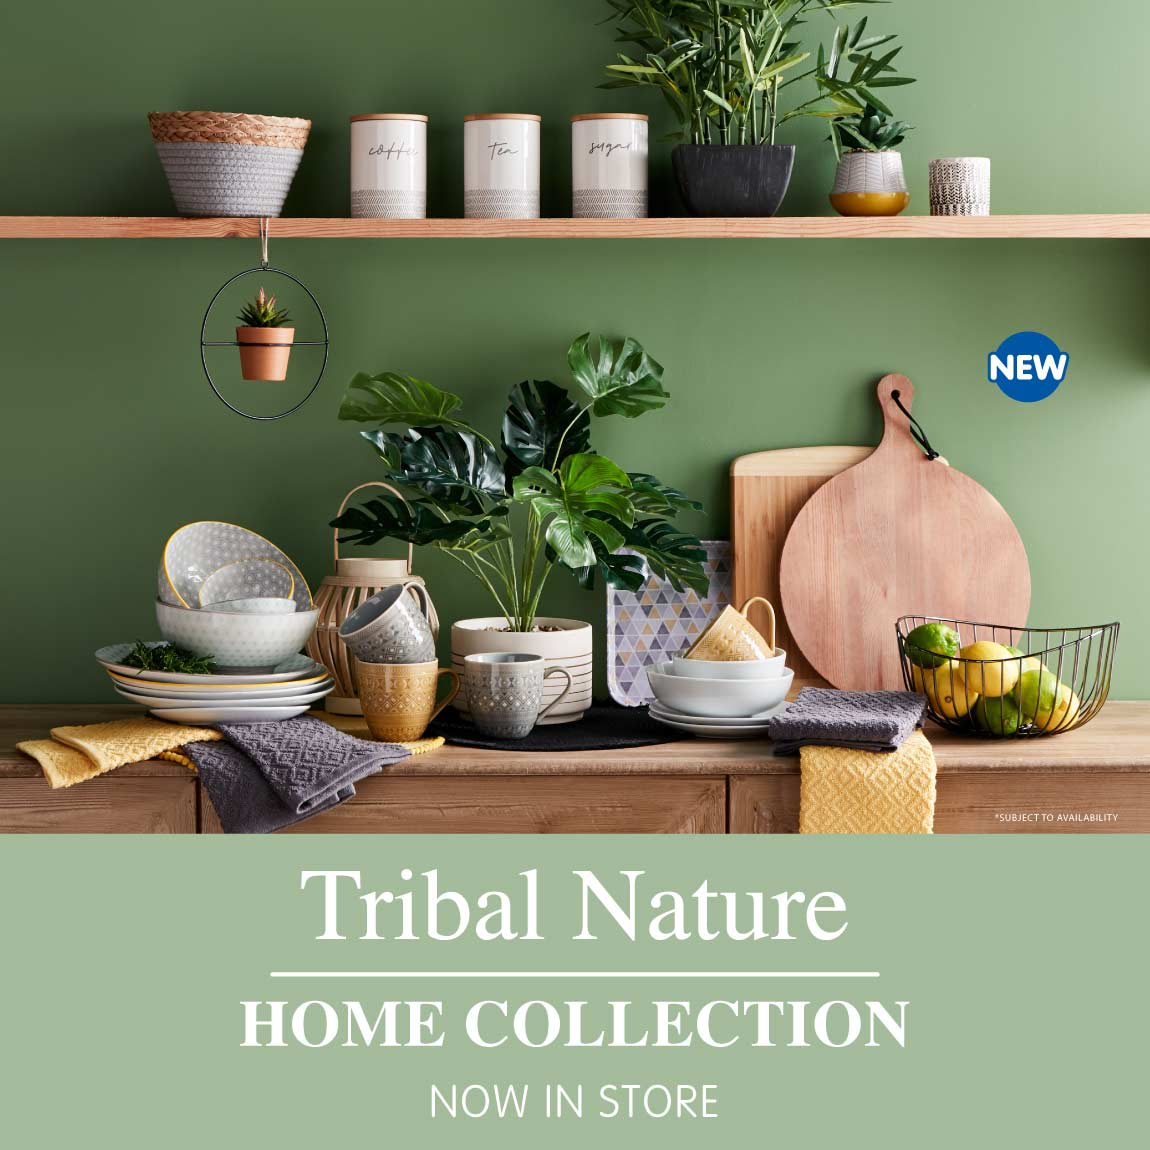 New Tribal Nature Home Collection at B&M.